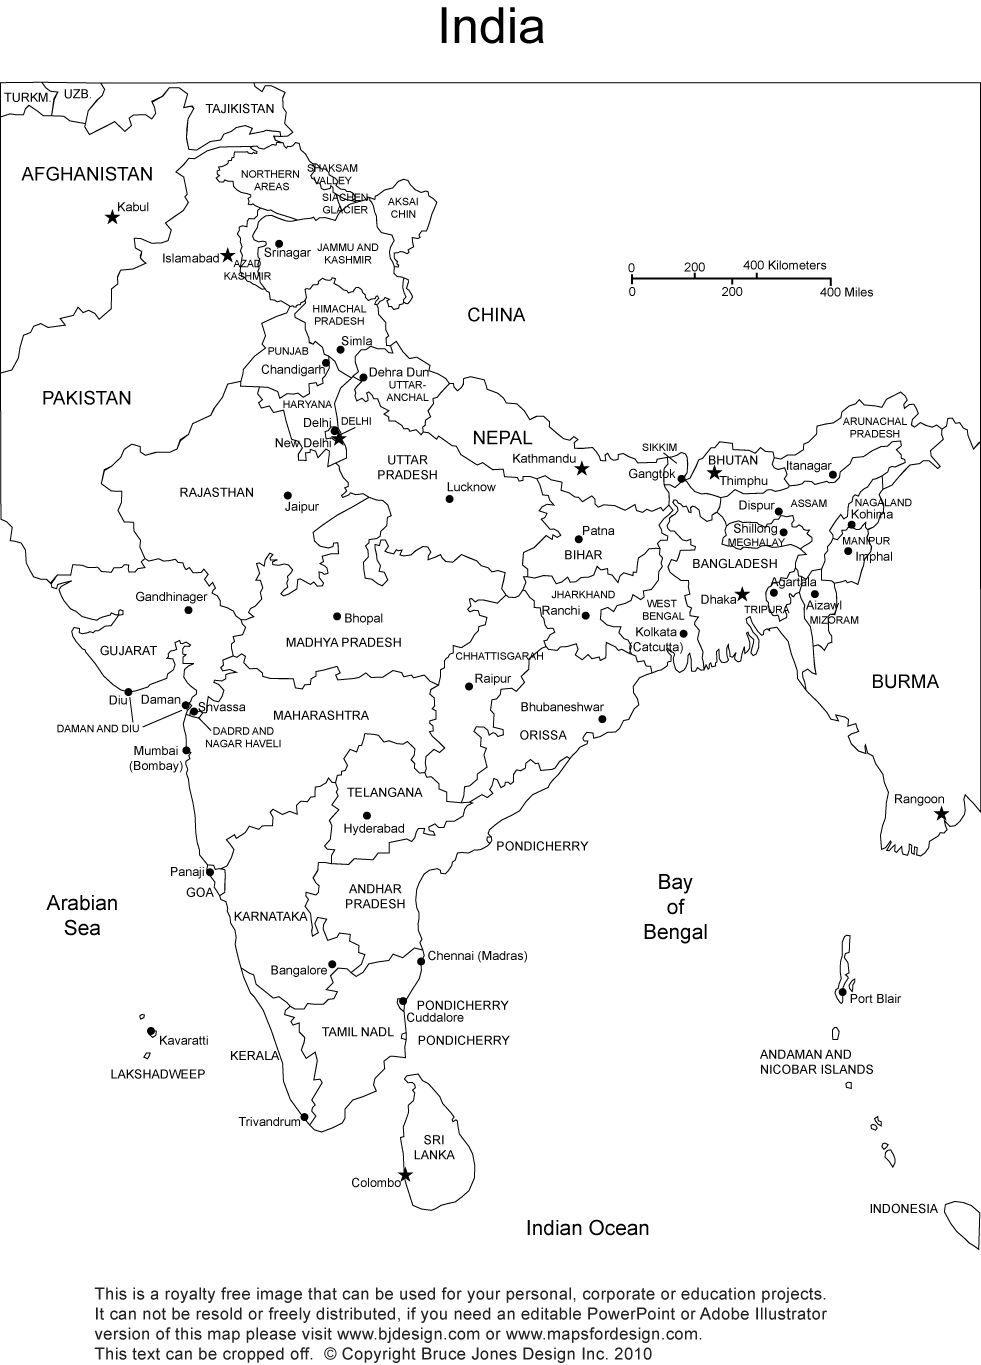 Outline Map Of Asia Labeled.India Printable Blank Maps Outline Maps Royalty Free